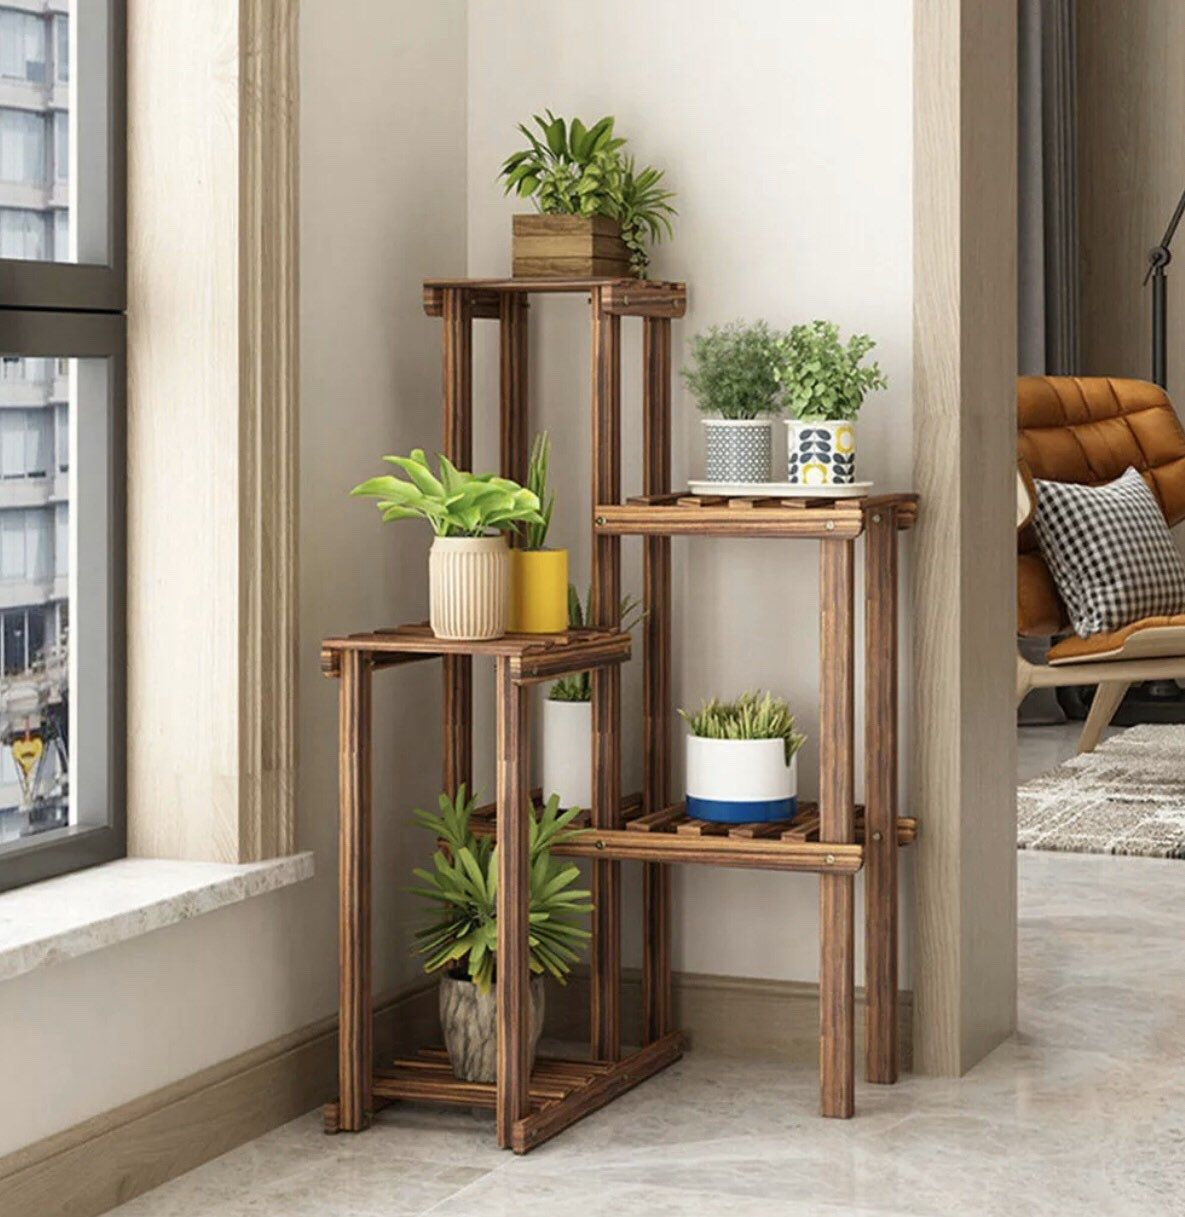 Wooden Corner Flower Plant Stands Indoor Flower Stand Rack Shelf Outdoor Patio is part of Plant stand indoor, House plants decor, Plant decor indoor, Corner plant, Wood plant stand, Plant shelves -  41 31 x 11 42 x 3 94inch ( L x W x H) Package Included  1 x 6Tier Wooden Flower Pot Stand  1 x Wrench 10 x Long Screws 10 x Short Screws 1 x Installation Instruction Note   The flower stand parts will be sent by separate and without assembling  Please note that pots and plants, flowers are not included   Please refer to the measurement  Tiny measuring error is allowable within normal range   There might be a little color difference due to the monitor, camera or other factors, please refer to the physical item